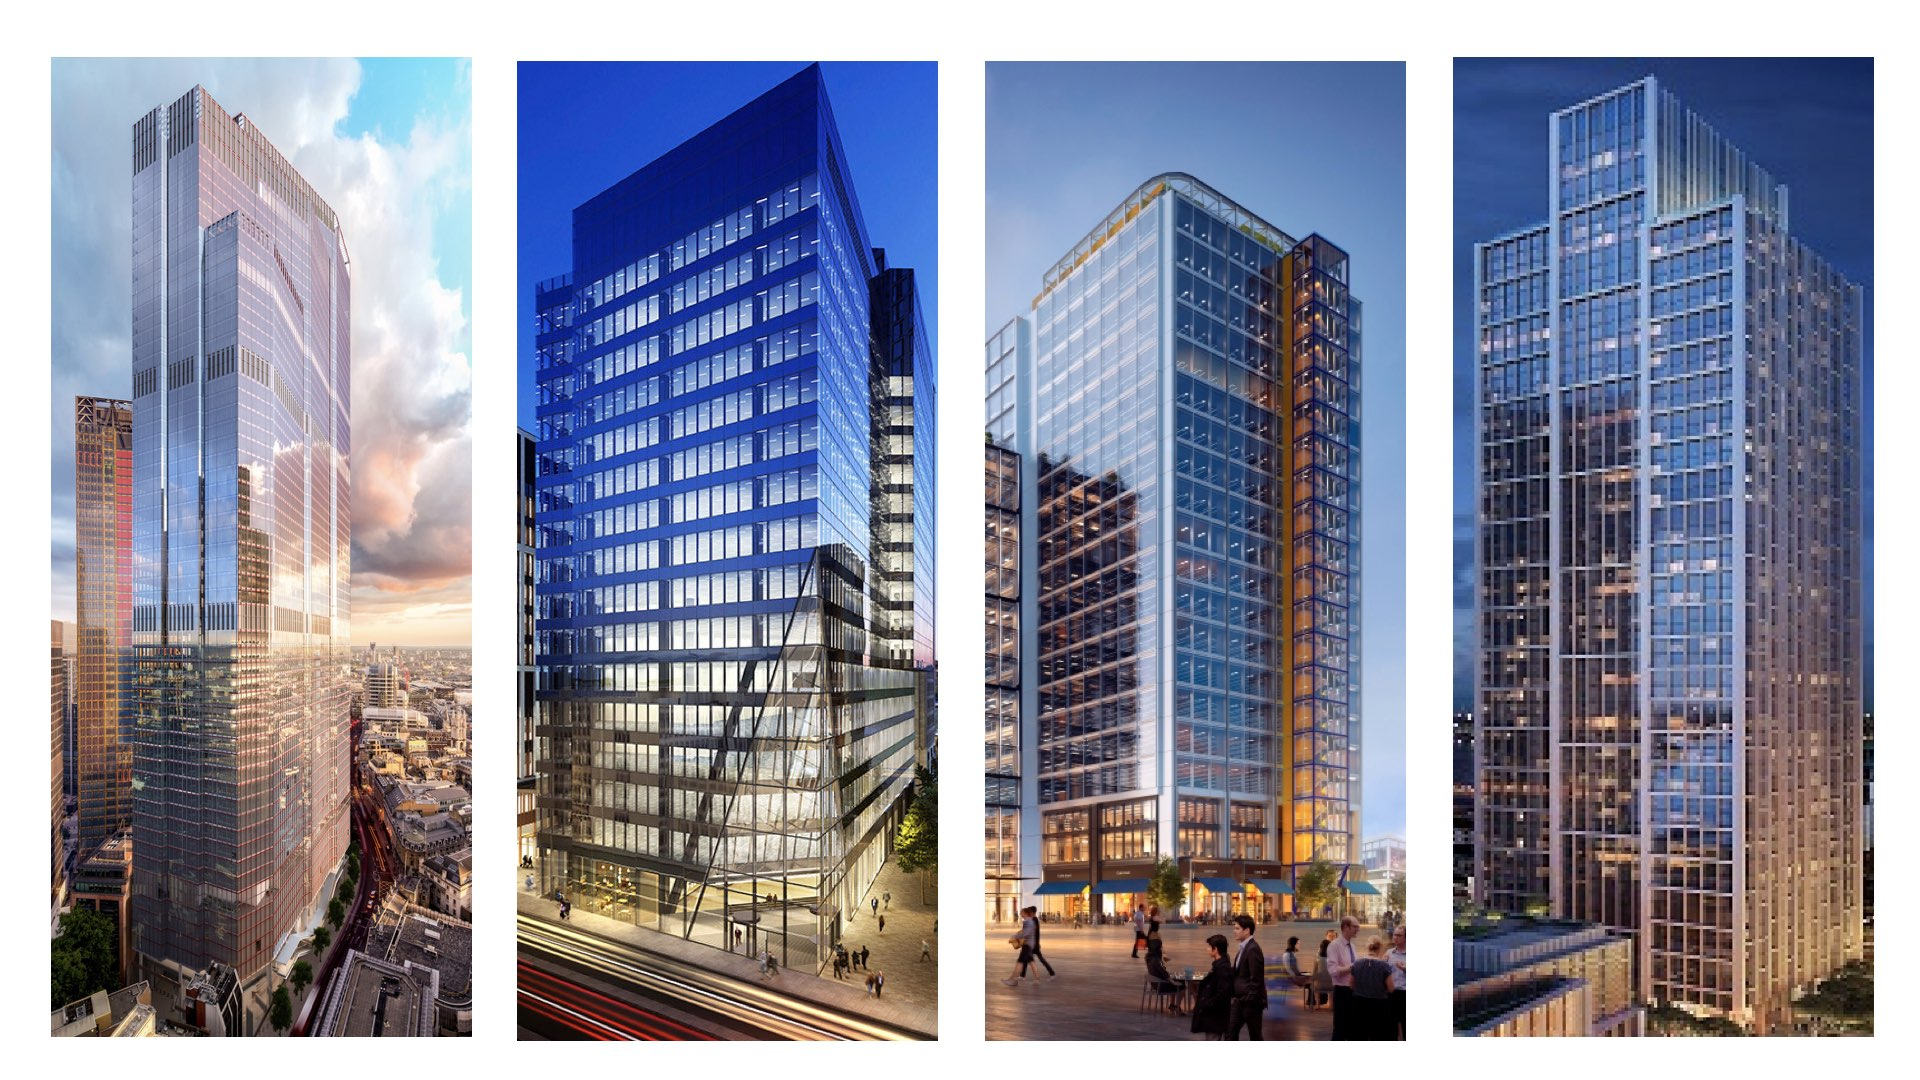 TClarke London moves forward with next round of landmark projects